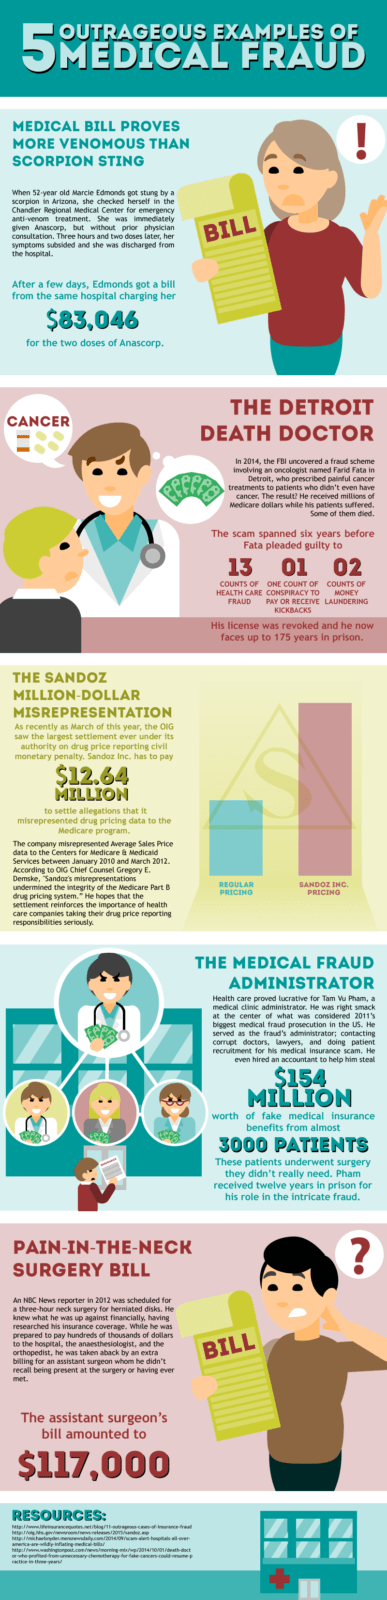 5 Most Outrageous Examples of Medical Fraud - Infographic